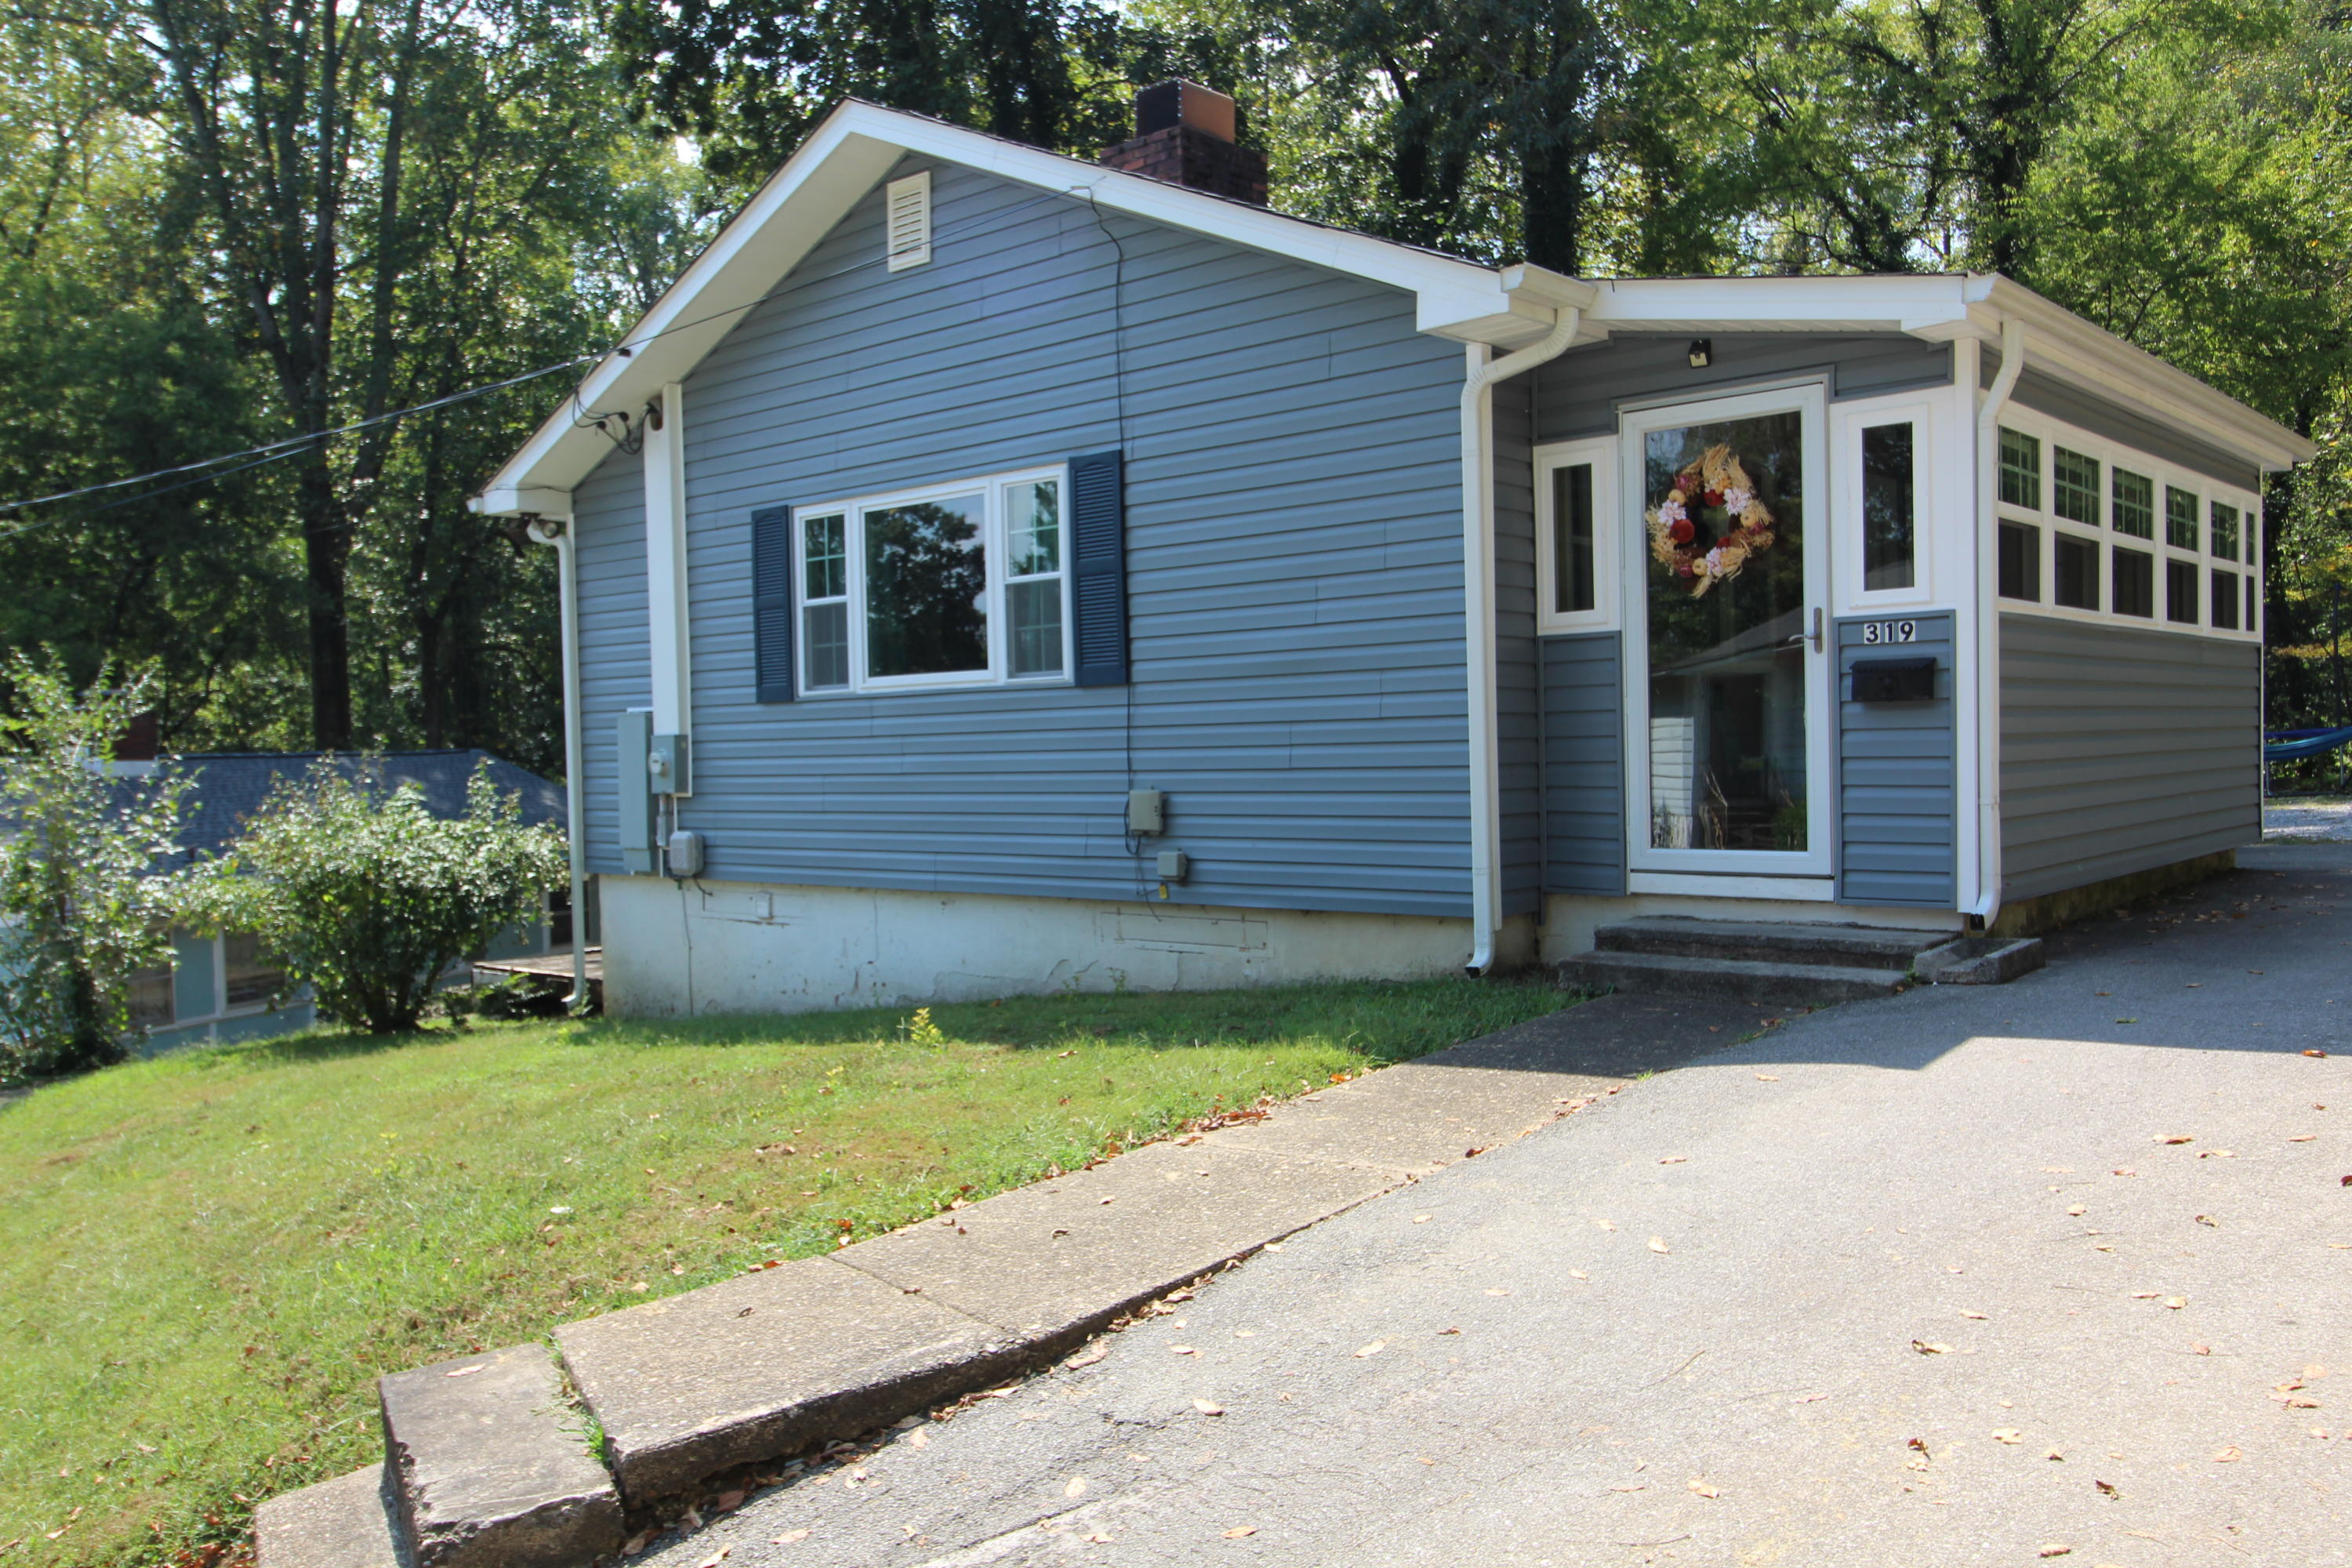 319 Faunce Rd, Oak Ridge, Tennessee 37830, 2 Bedrooms Bedrooms, ,1 BathroomBathrooms,Single Family,For Sale,Faunce,1094905